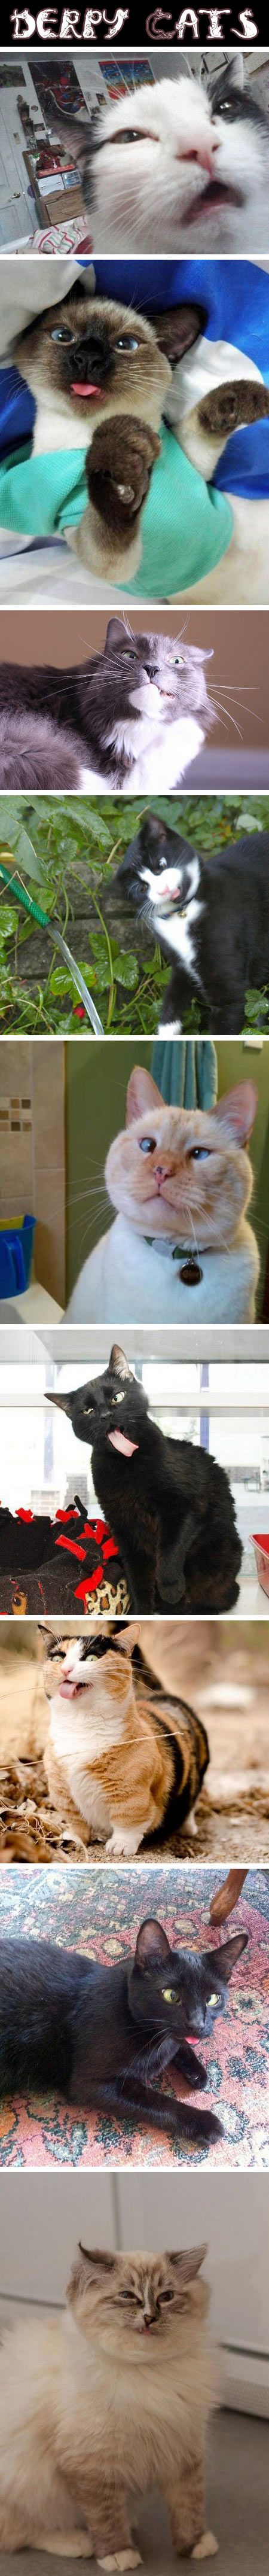 Derpy cats. If loving this wrong, I don't wanna be right.